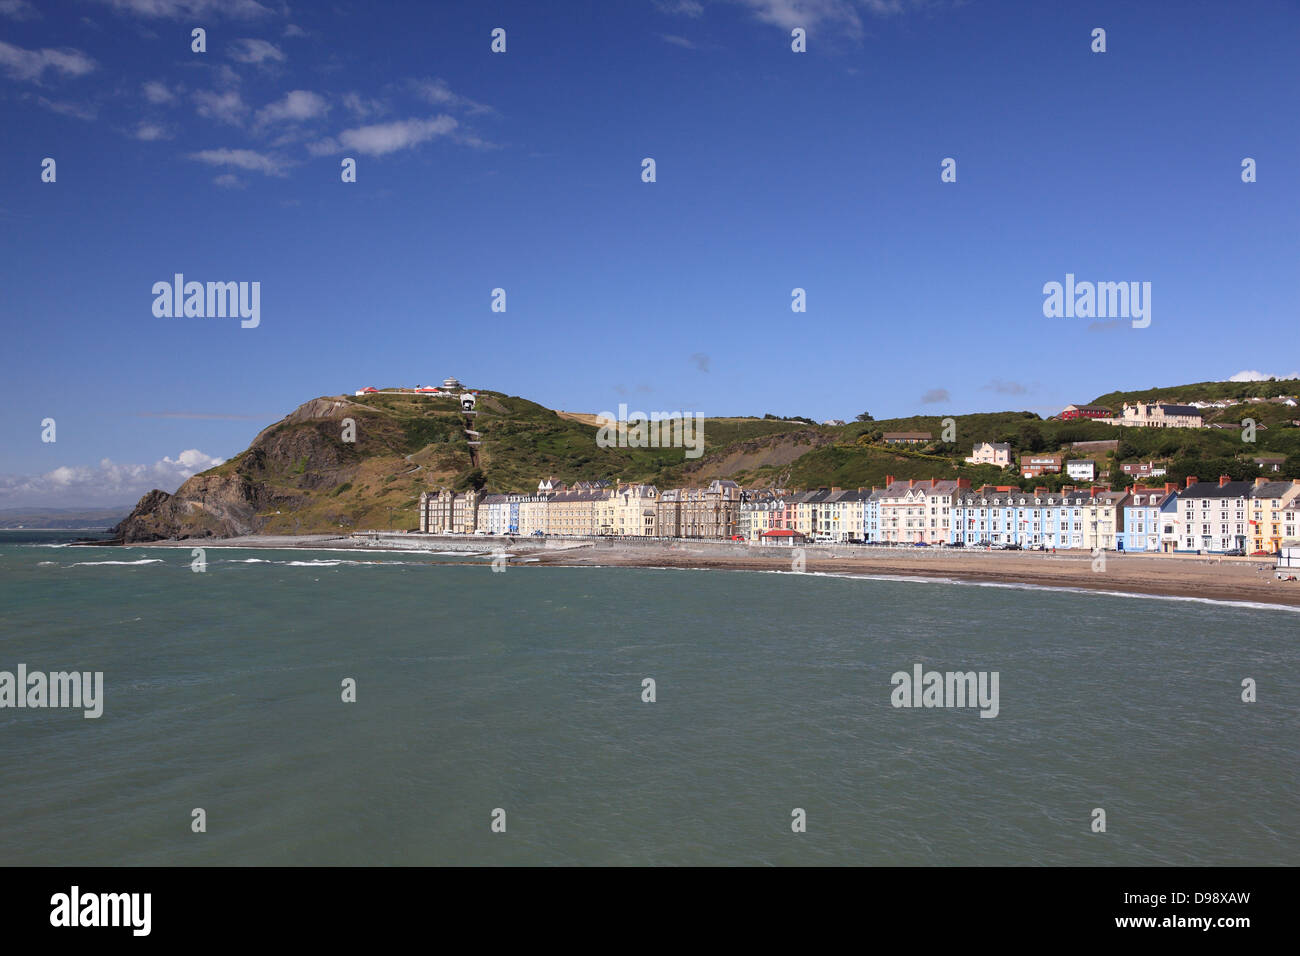 View of Aberystwyth beach, promenade and Constitution Hill with its funicular railway - Stock Image